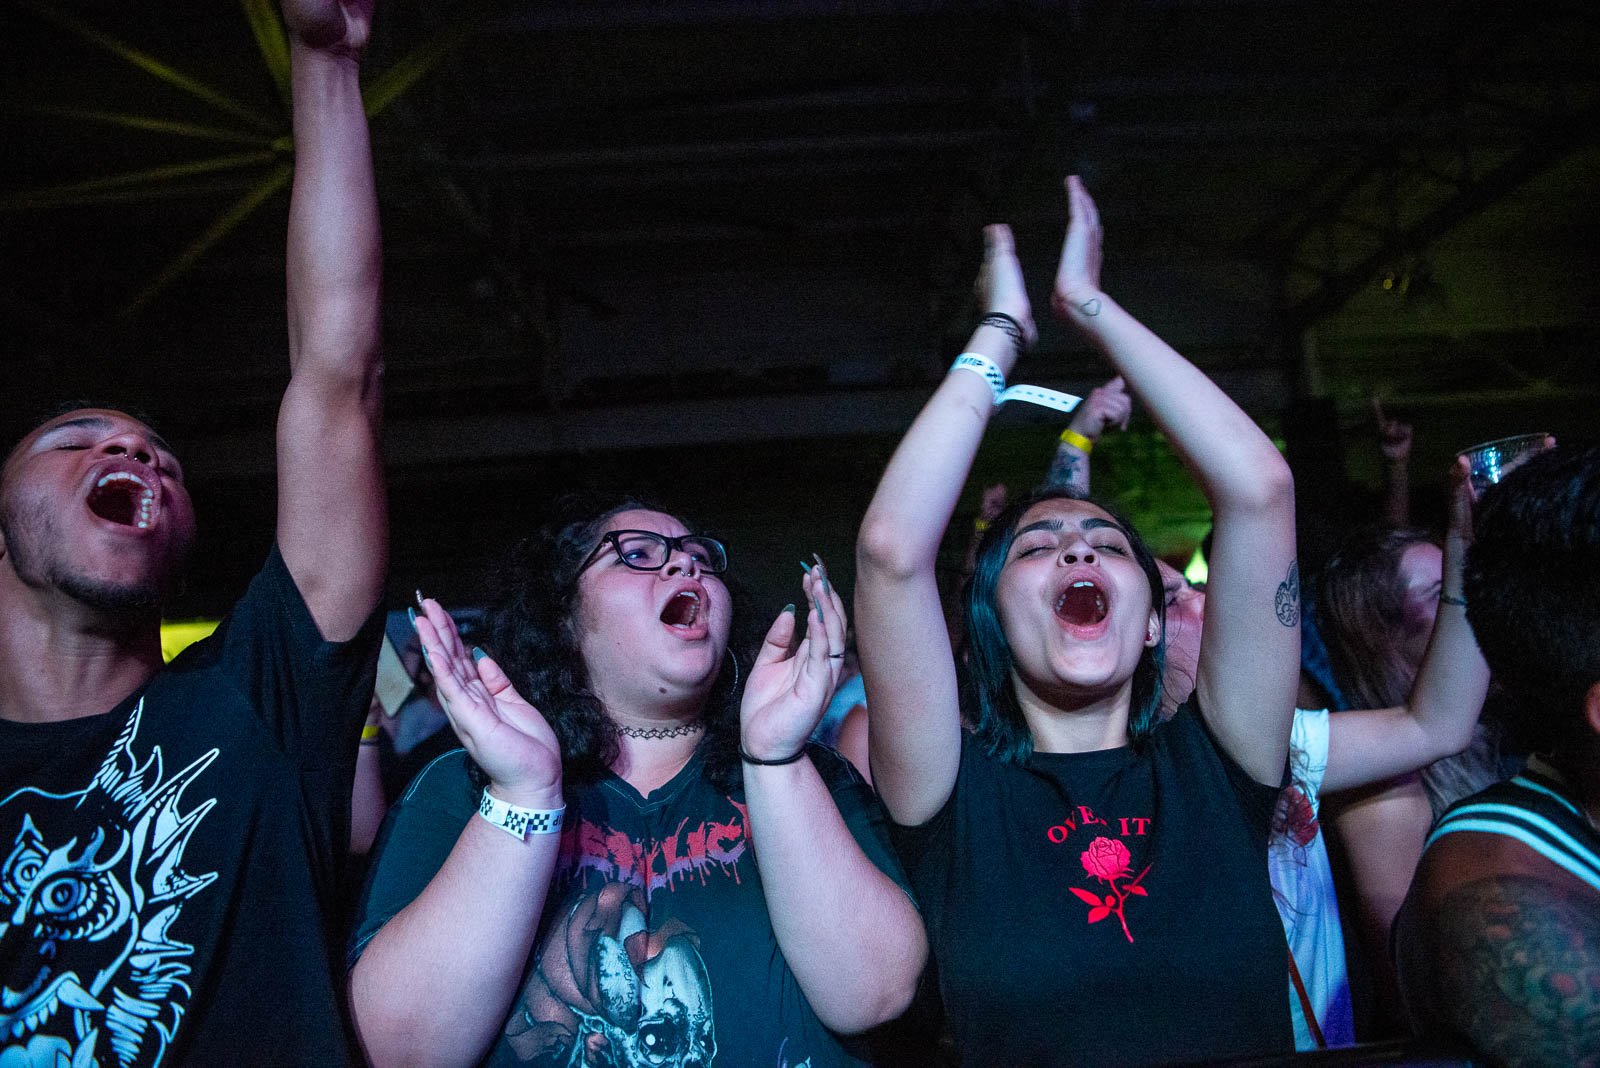 During Slashers at House of Vans